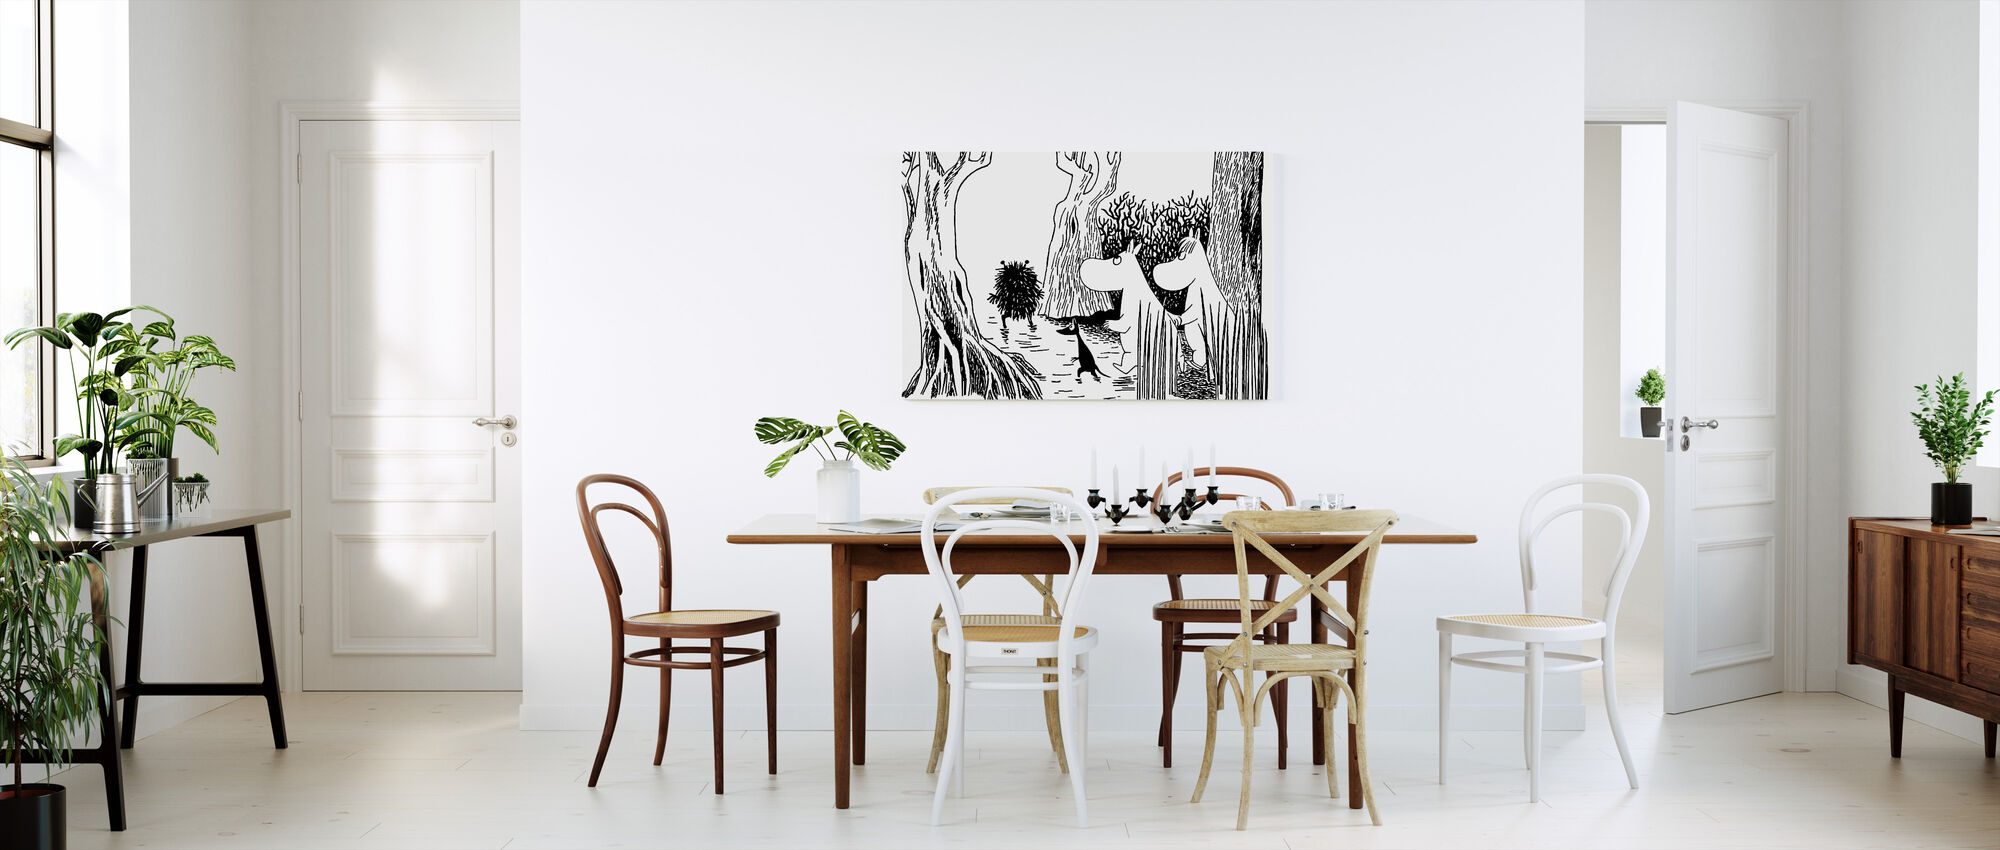 Moomin - Stinky - Canvas print - Kitchen